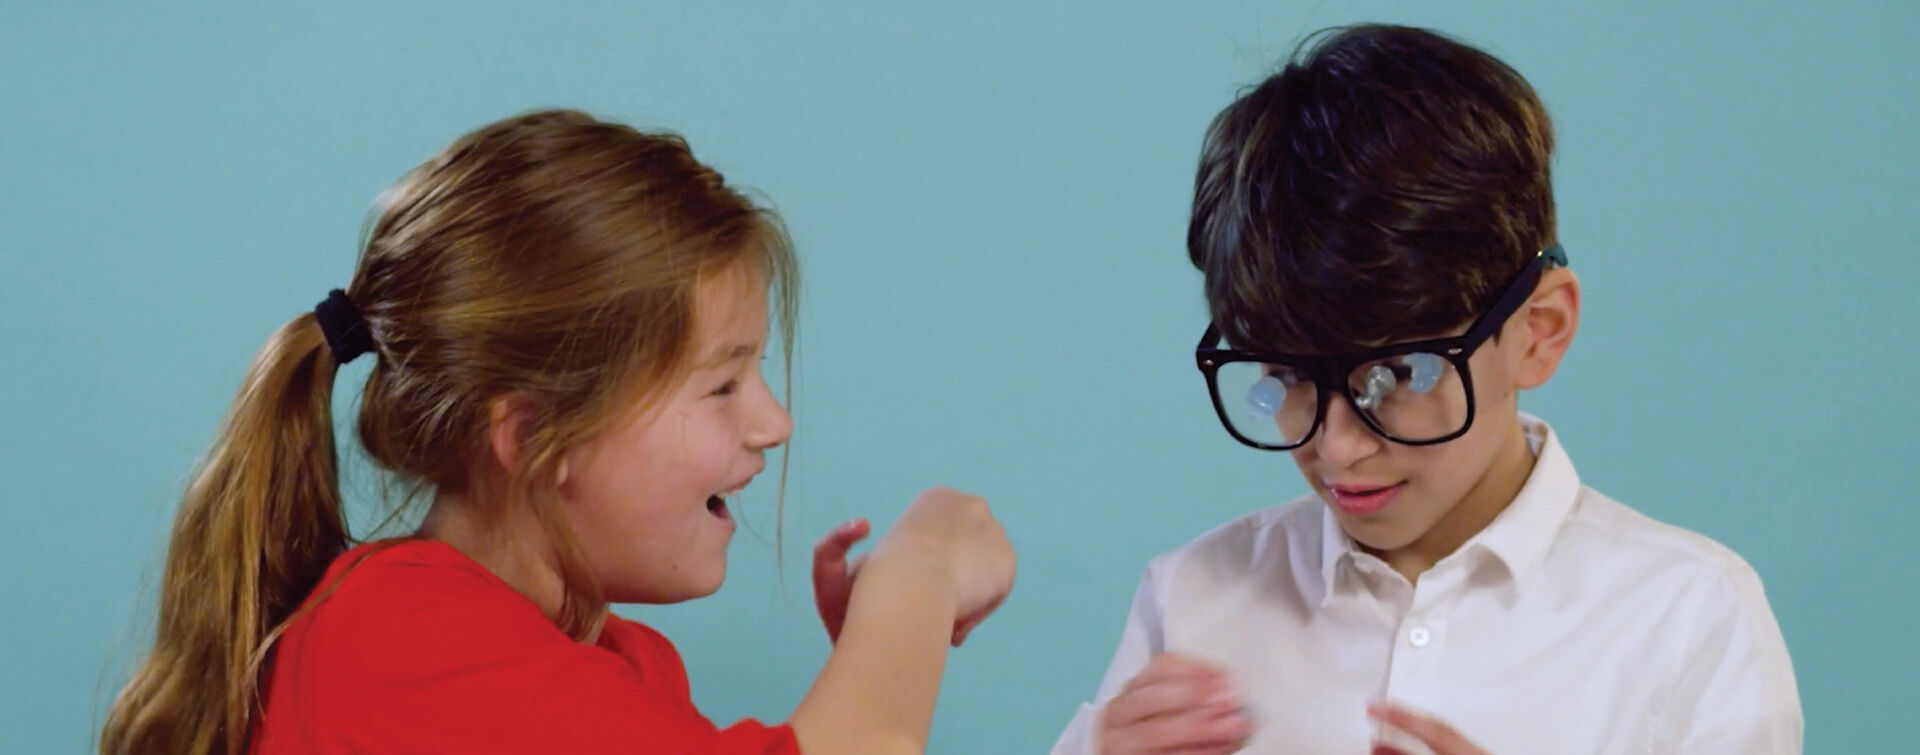 Watch our young concept testers putting Star Wars Micropopzto the test